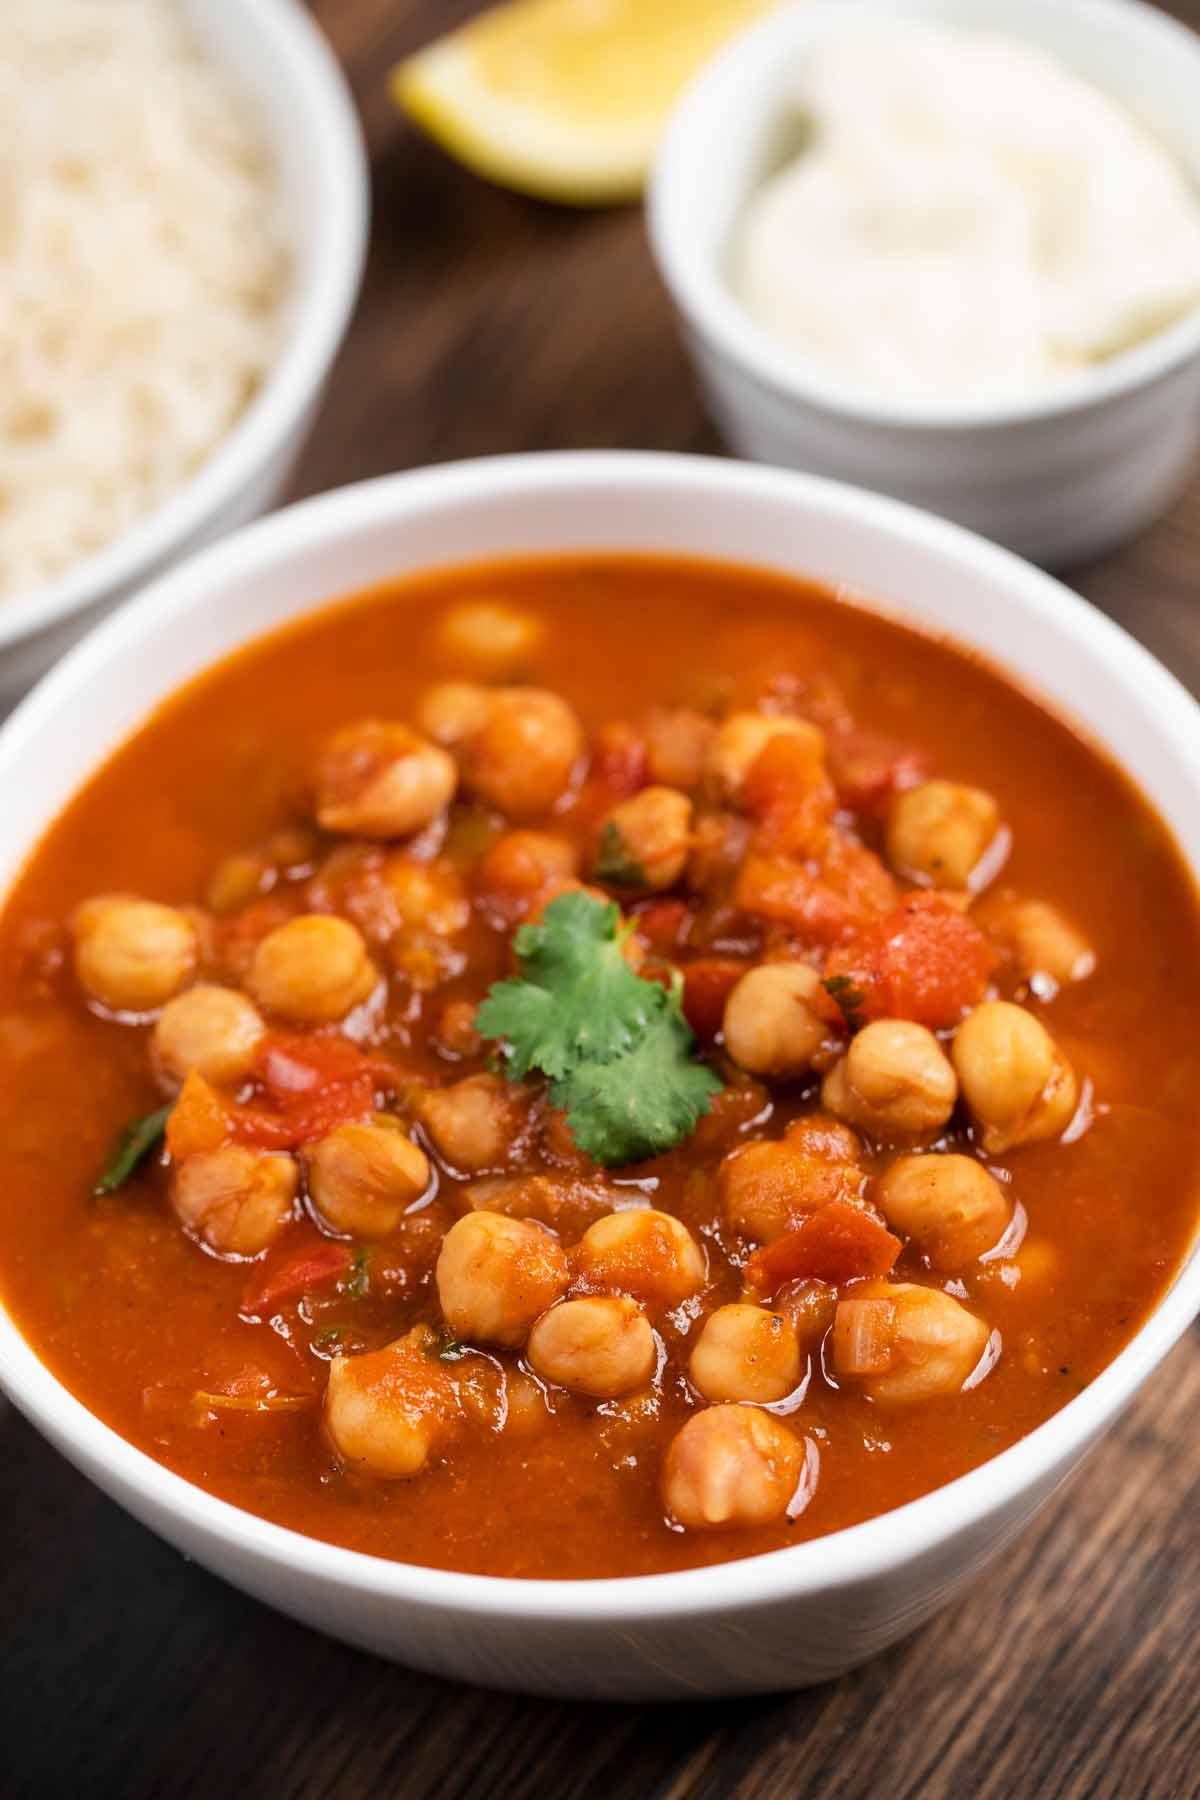 A closeup of a bowl of Instant Pot Chana Masala with chickpeas in a tomato based sauce.